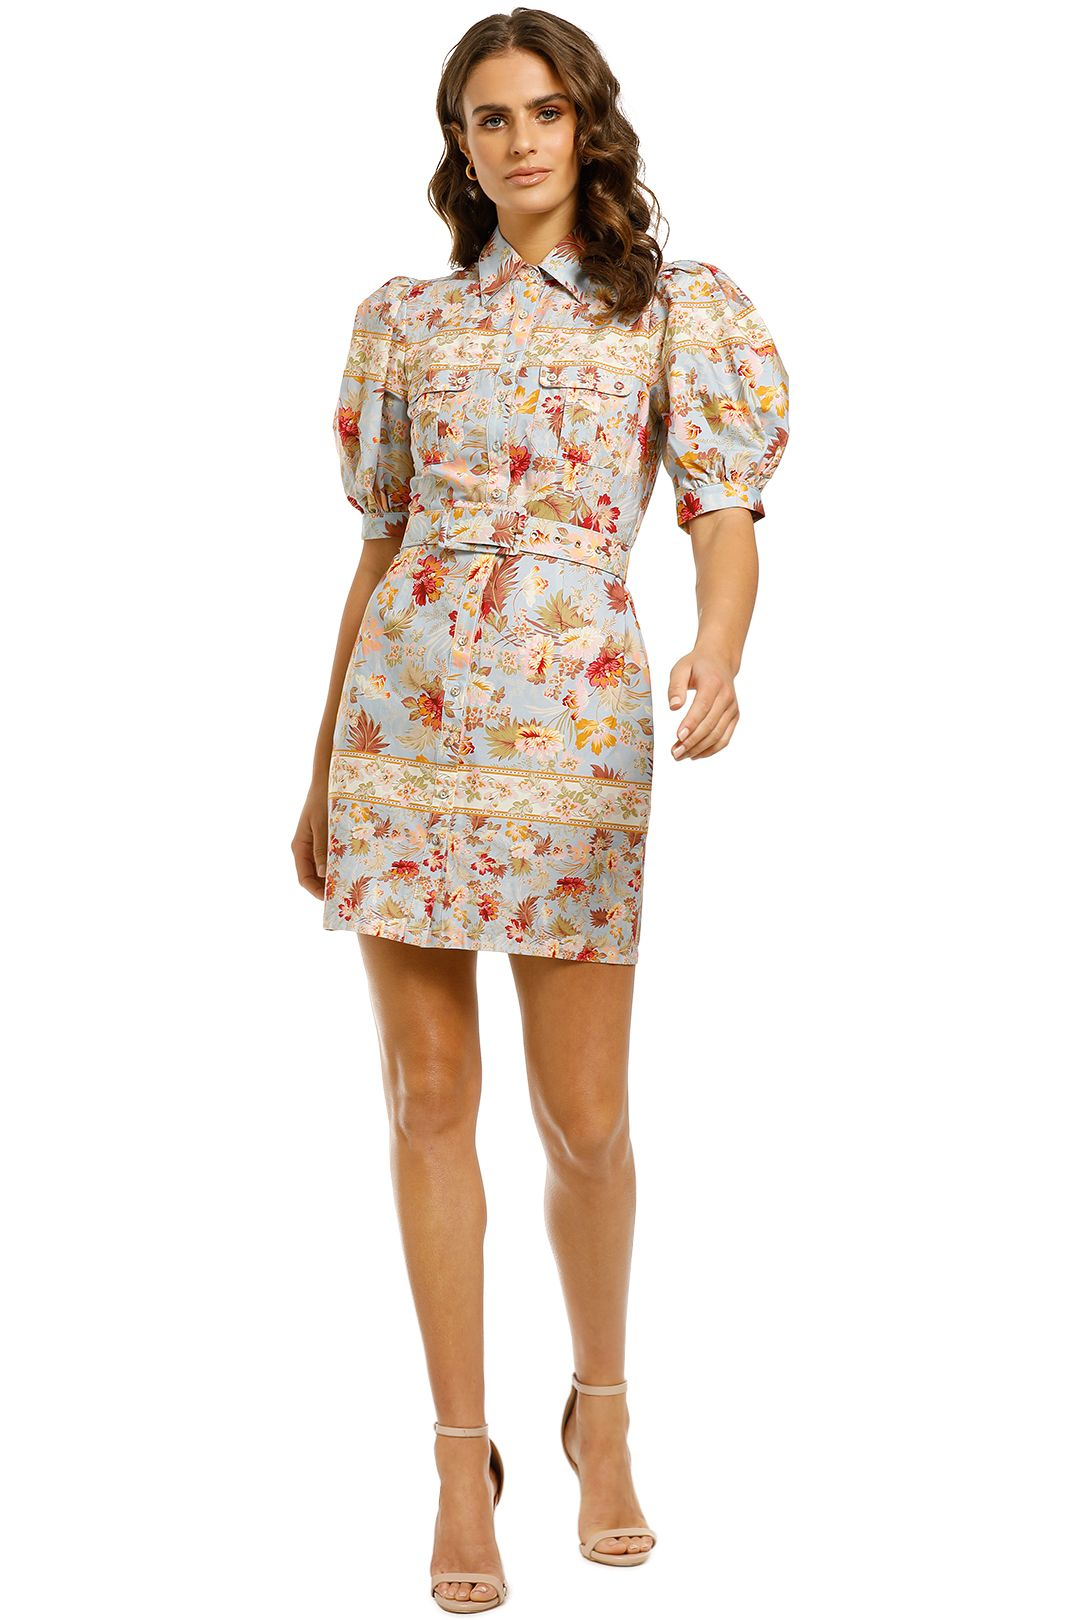 Pasduchas-Sanctuary-Dress-Sky-Front